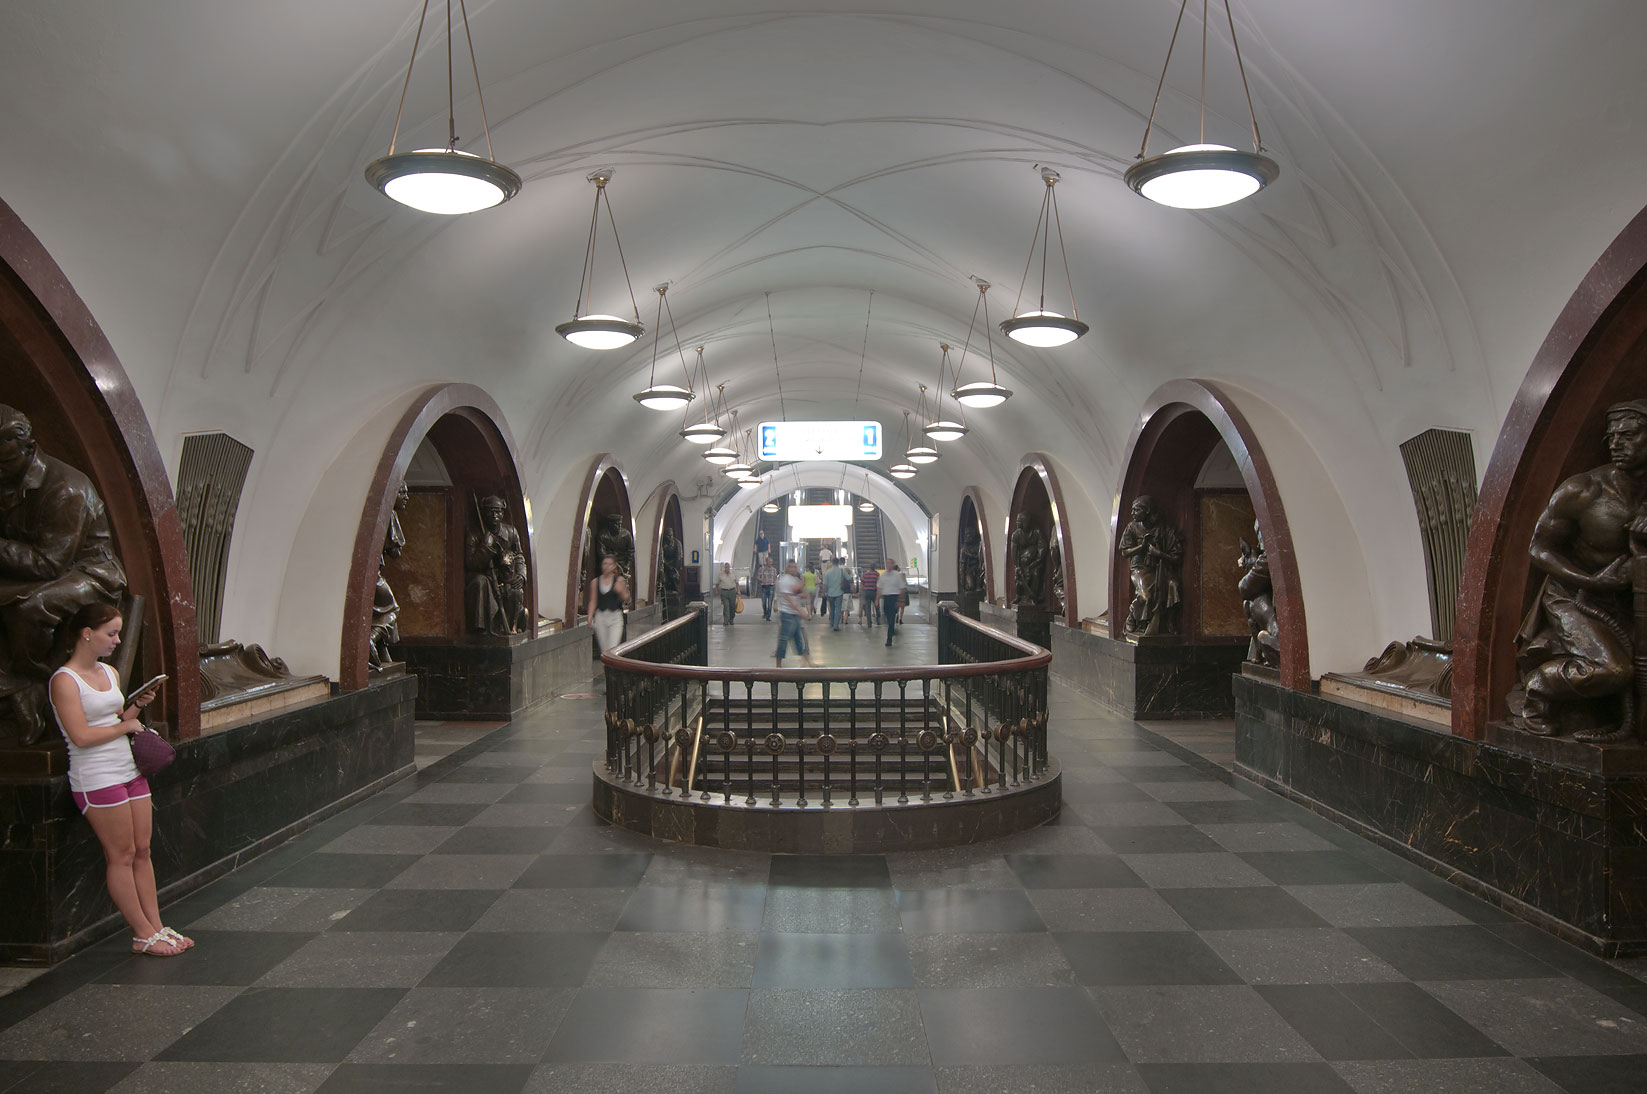 Arched subway station (Metro) Ploshchad Revolutsii. Moscow, Russia